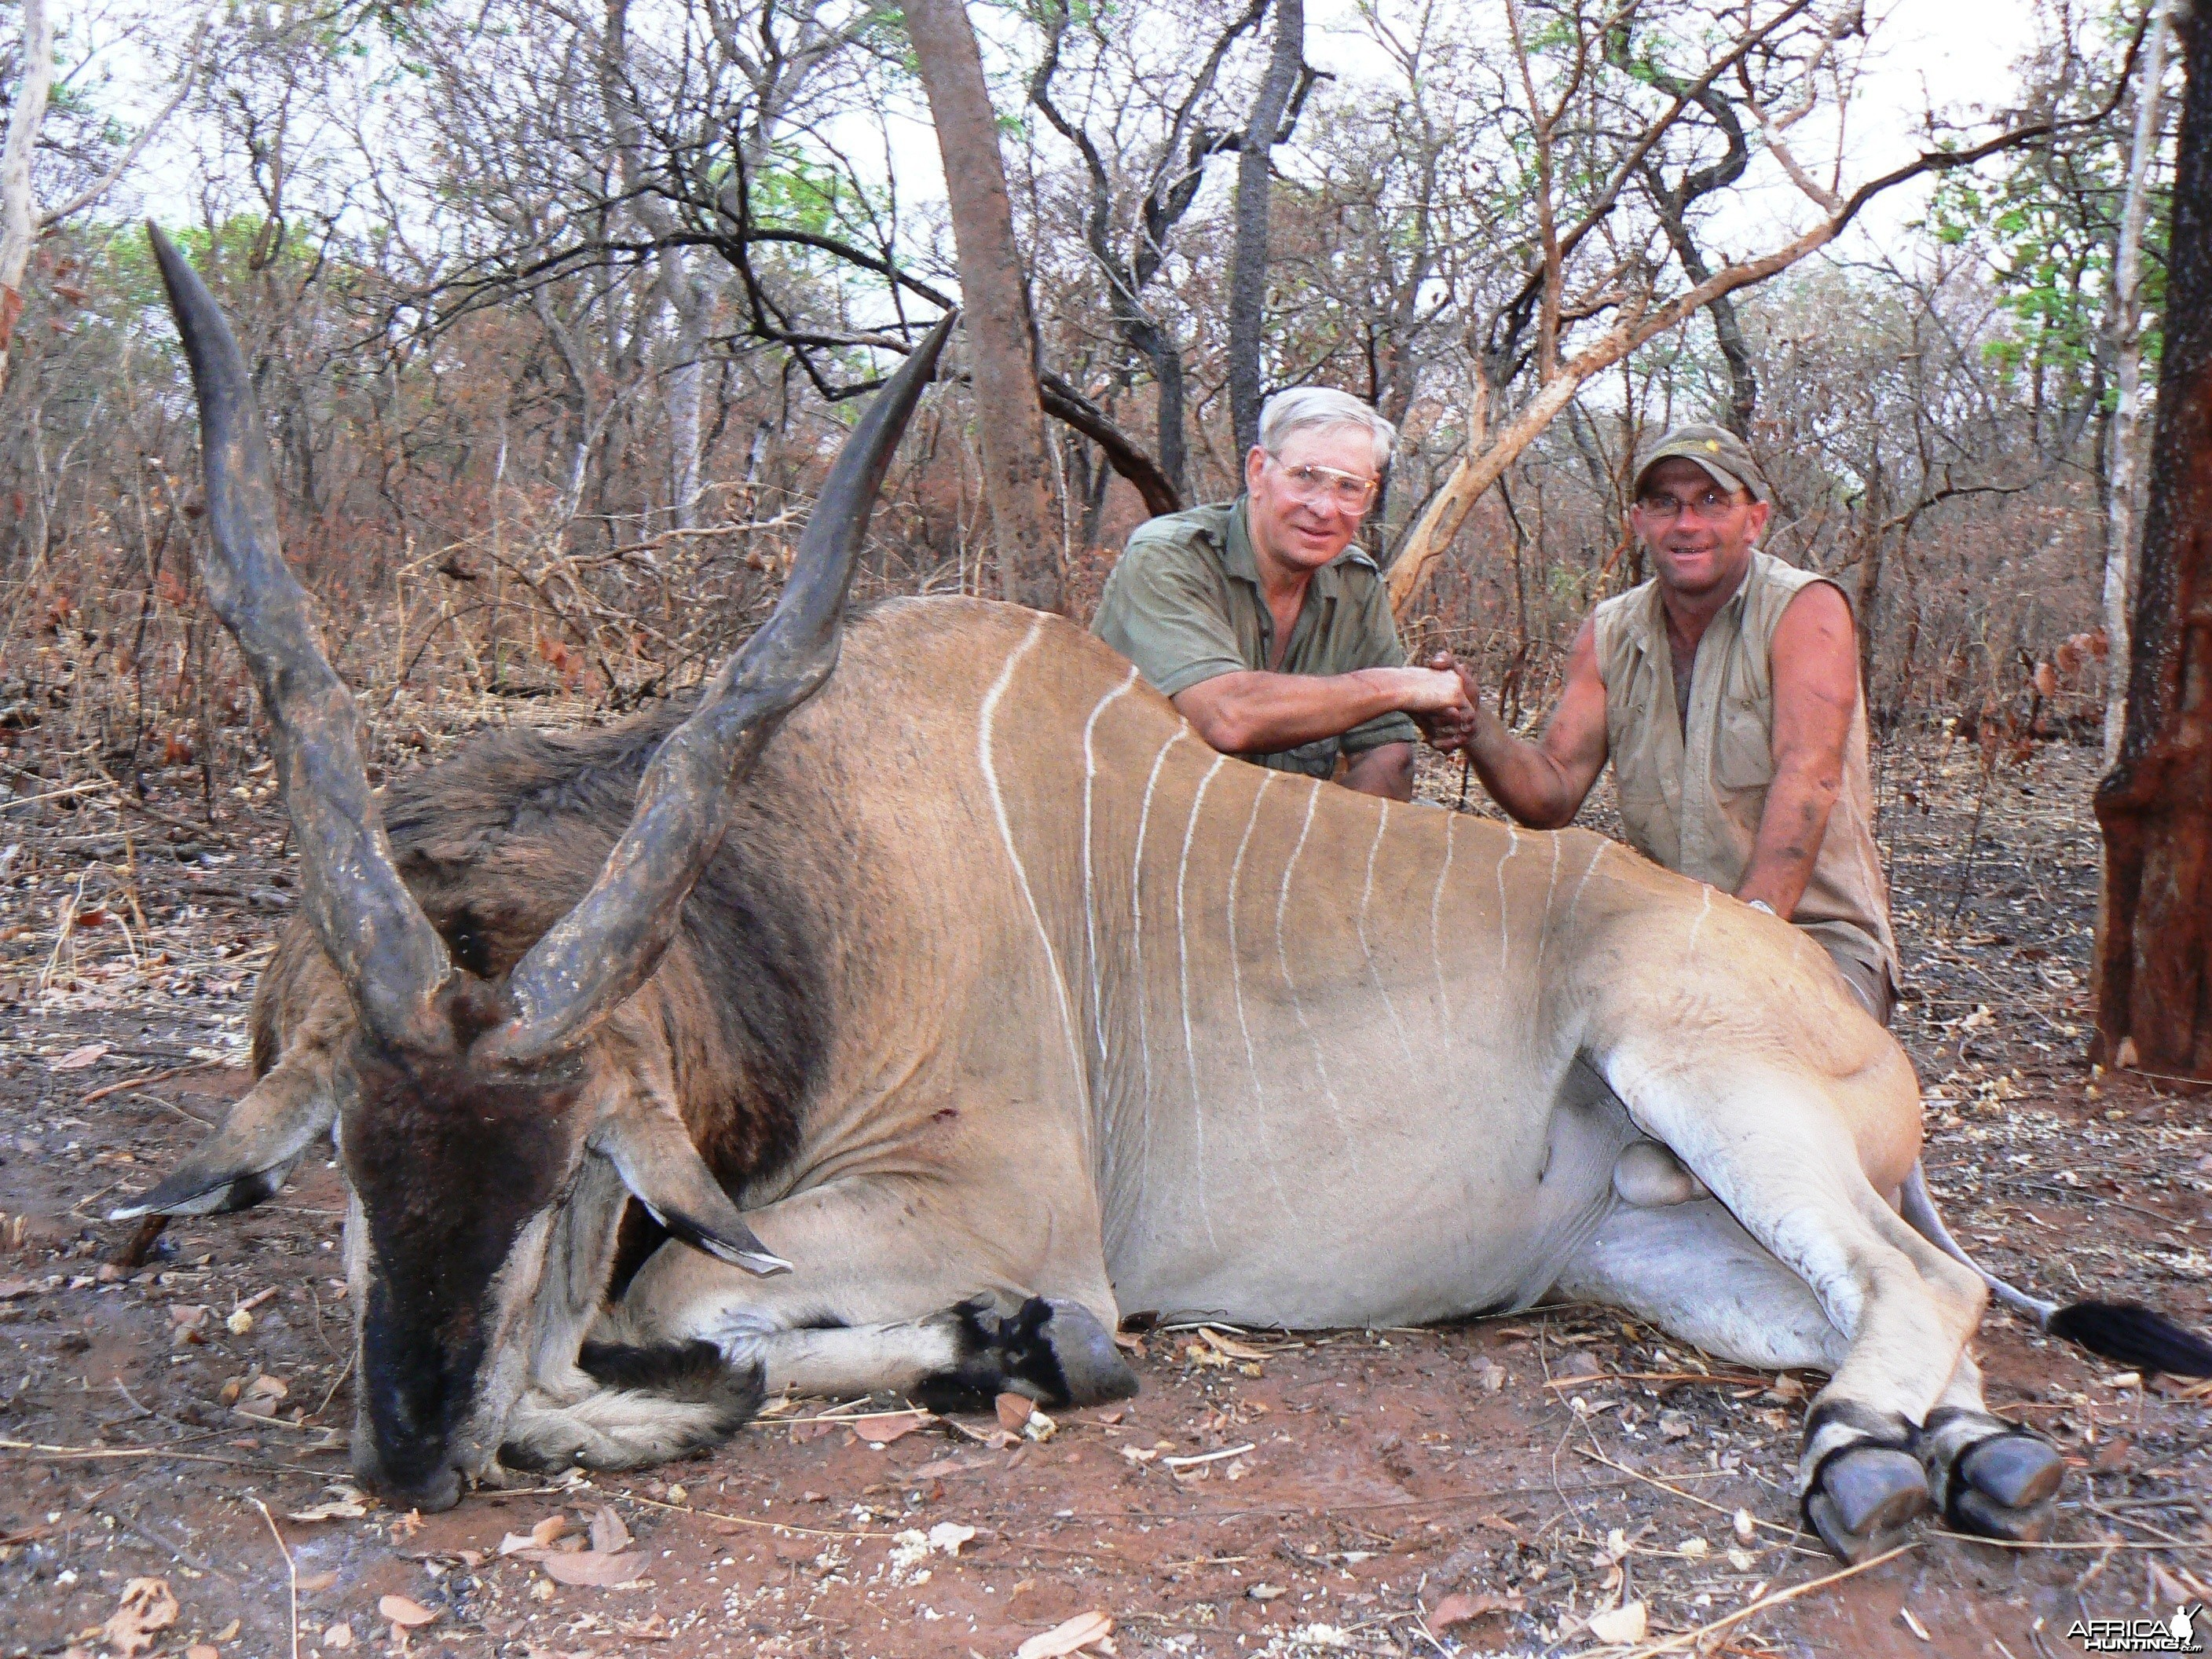 Very old, worn down Derby eland, hunted in CAR